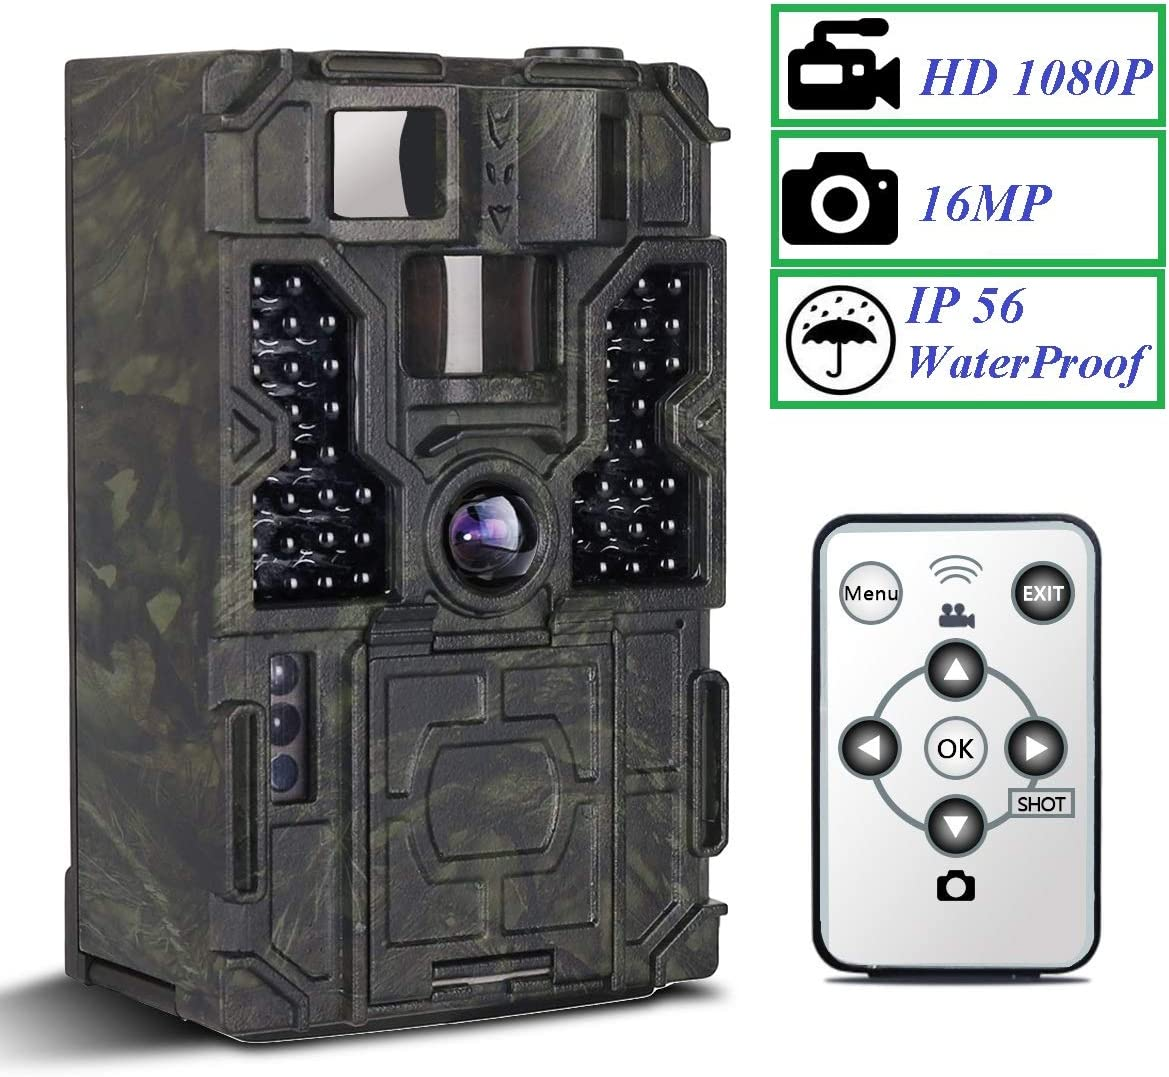 Trail Camera – PetElf 1080P 16MP Hunting Trail Game Camera Wildlife Monitoring Cam 48pcs IR LEDs Night Vision Motion Activated, 2.4 LCD Display 3 PIR Sensors 0.2s Trigger Speed 130 Detection